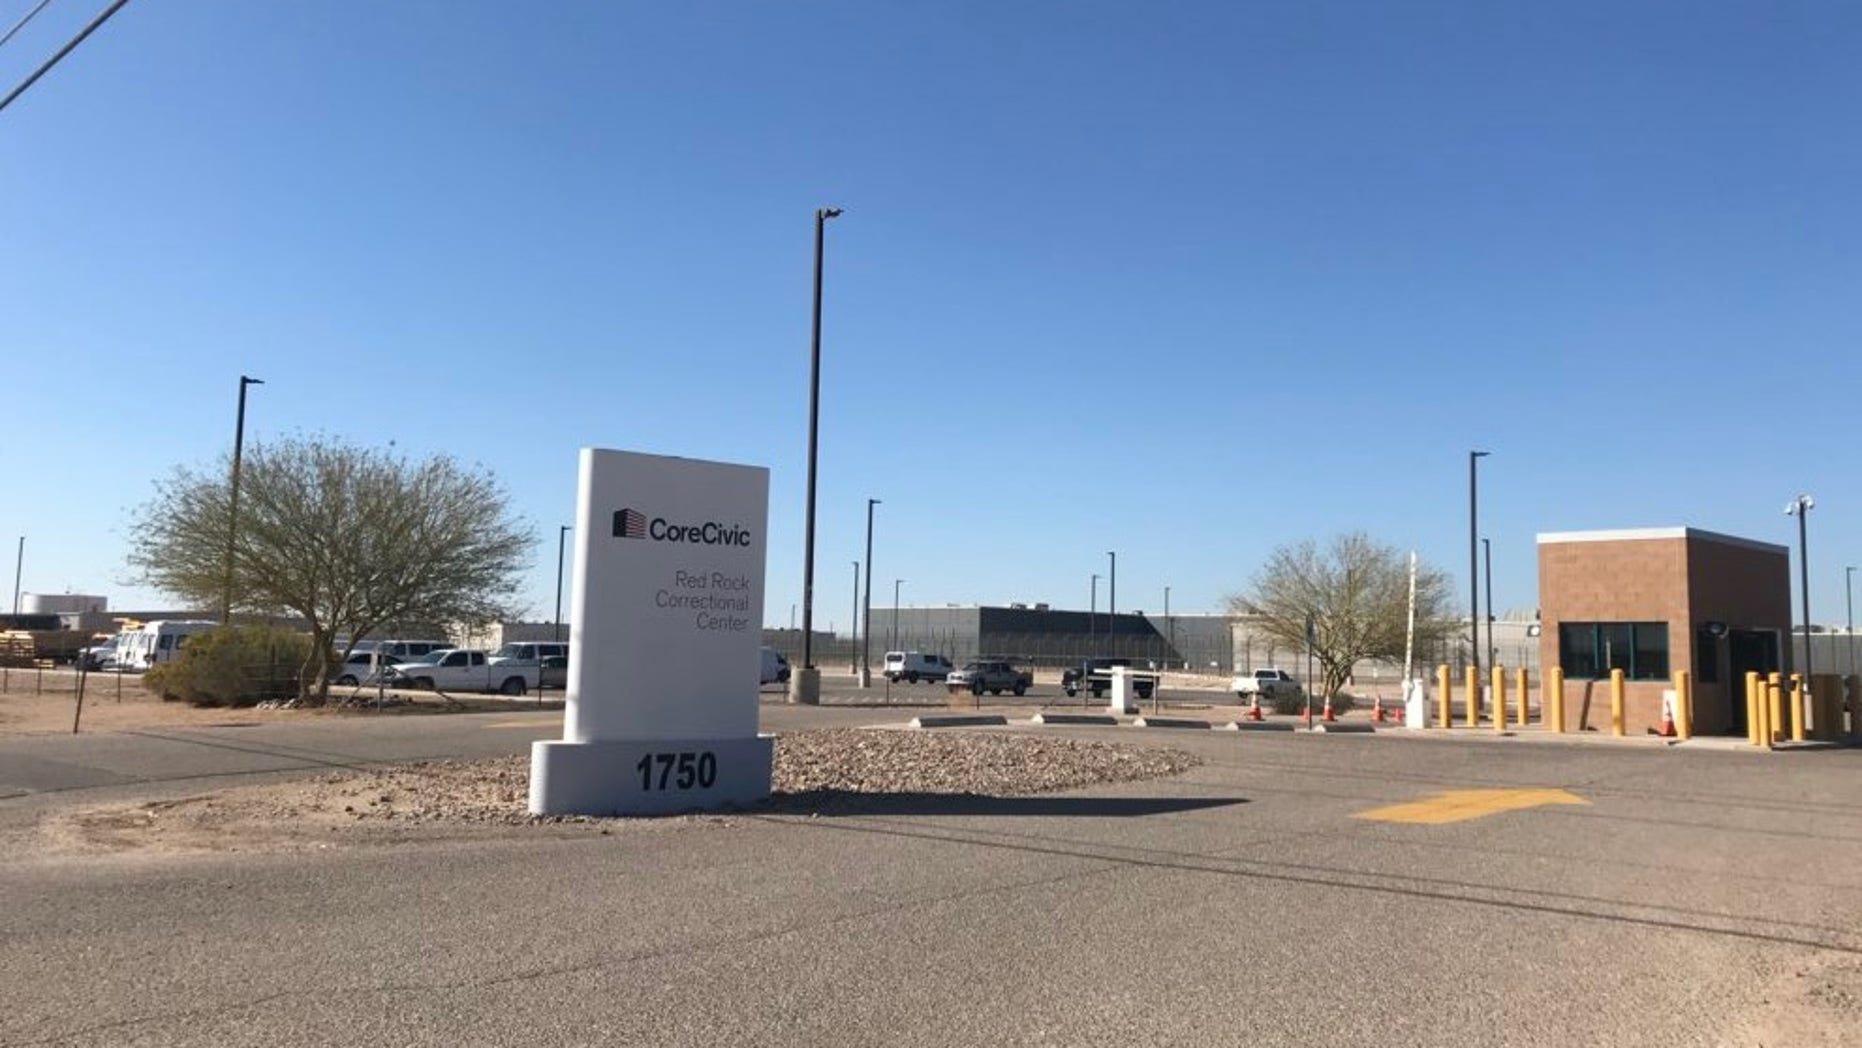 """Police in Arizona said a """"riot"""" broke out at the Red Rock Correctional Facility in Eloy, leaving 12 inmates and one guard injured."""